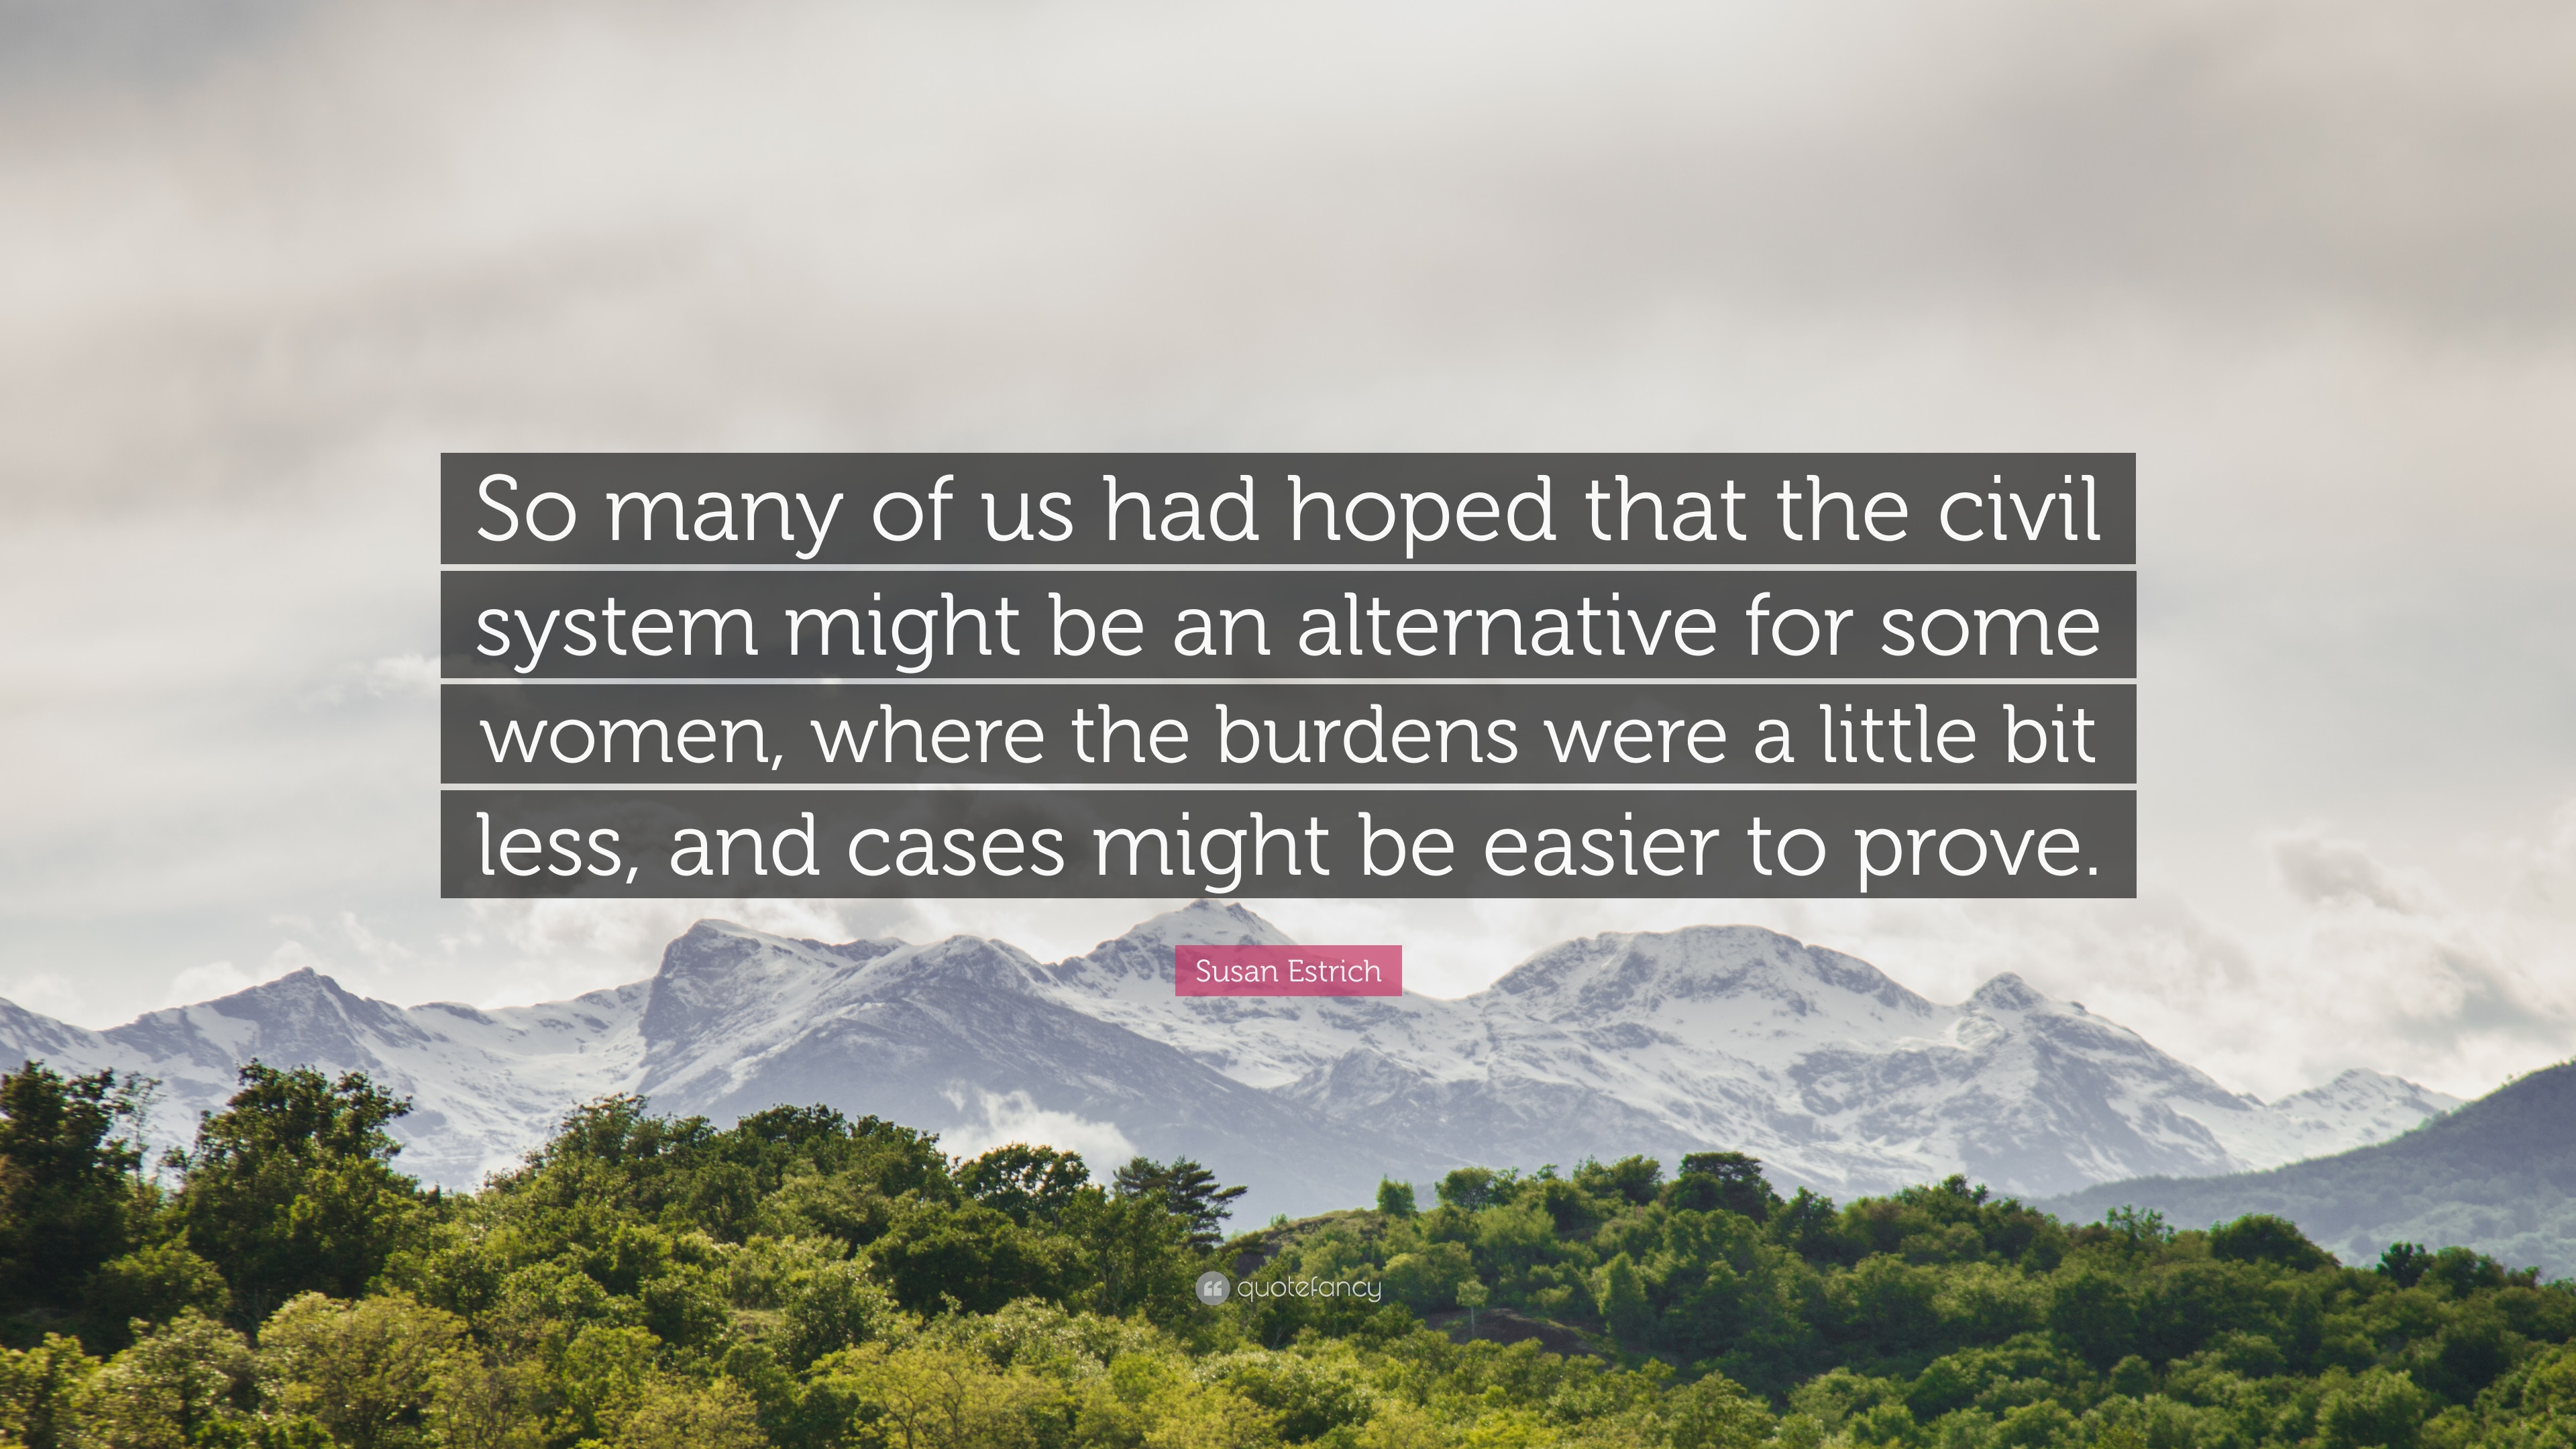 Susan Estrich Quote So Many Of Us Had Hoped That The Civil System Might